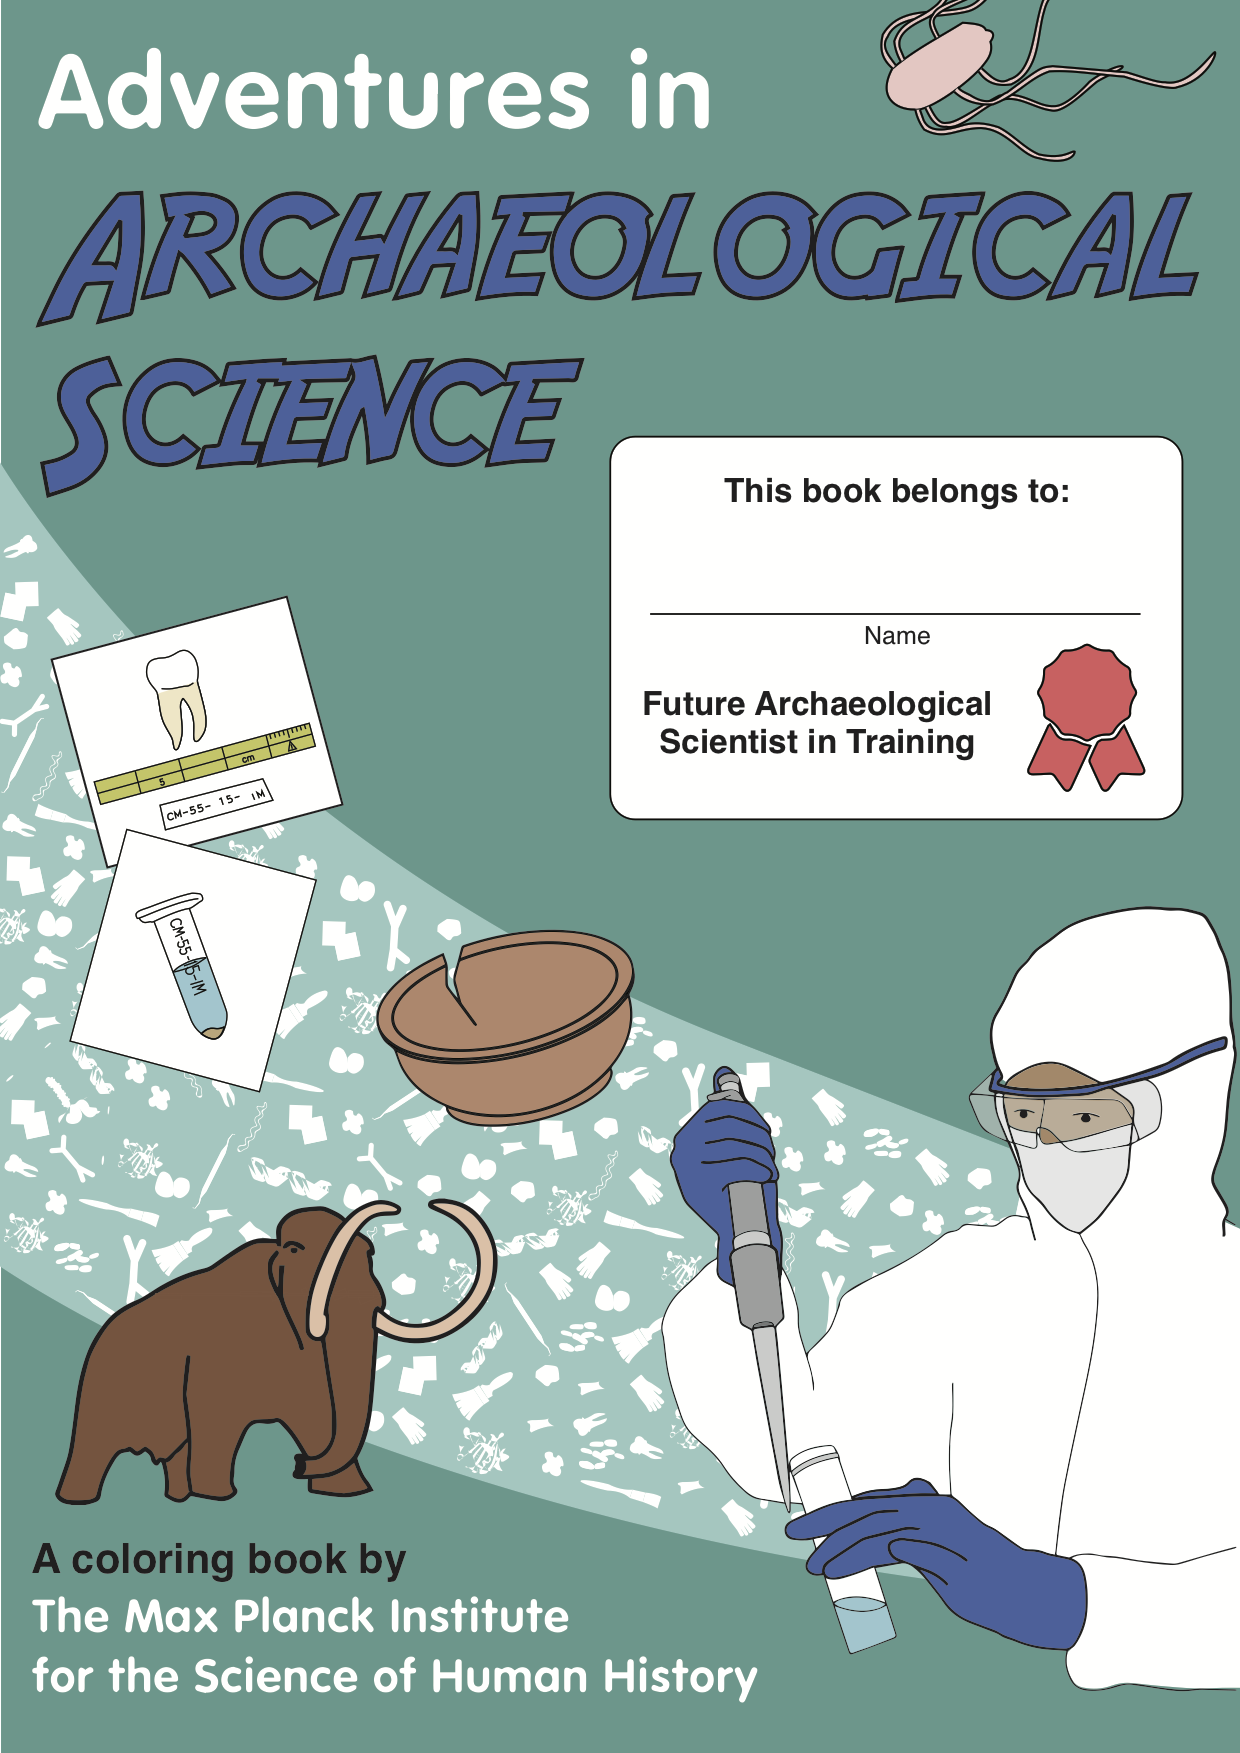 Adventures In Archaeological Science Coloring Book Now